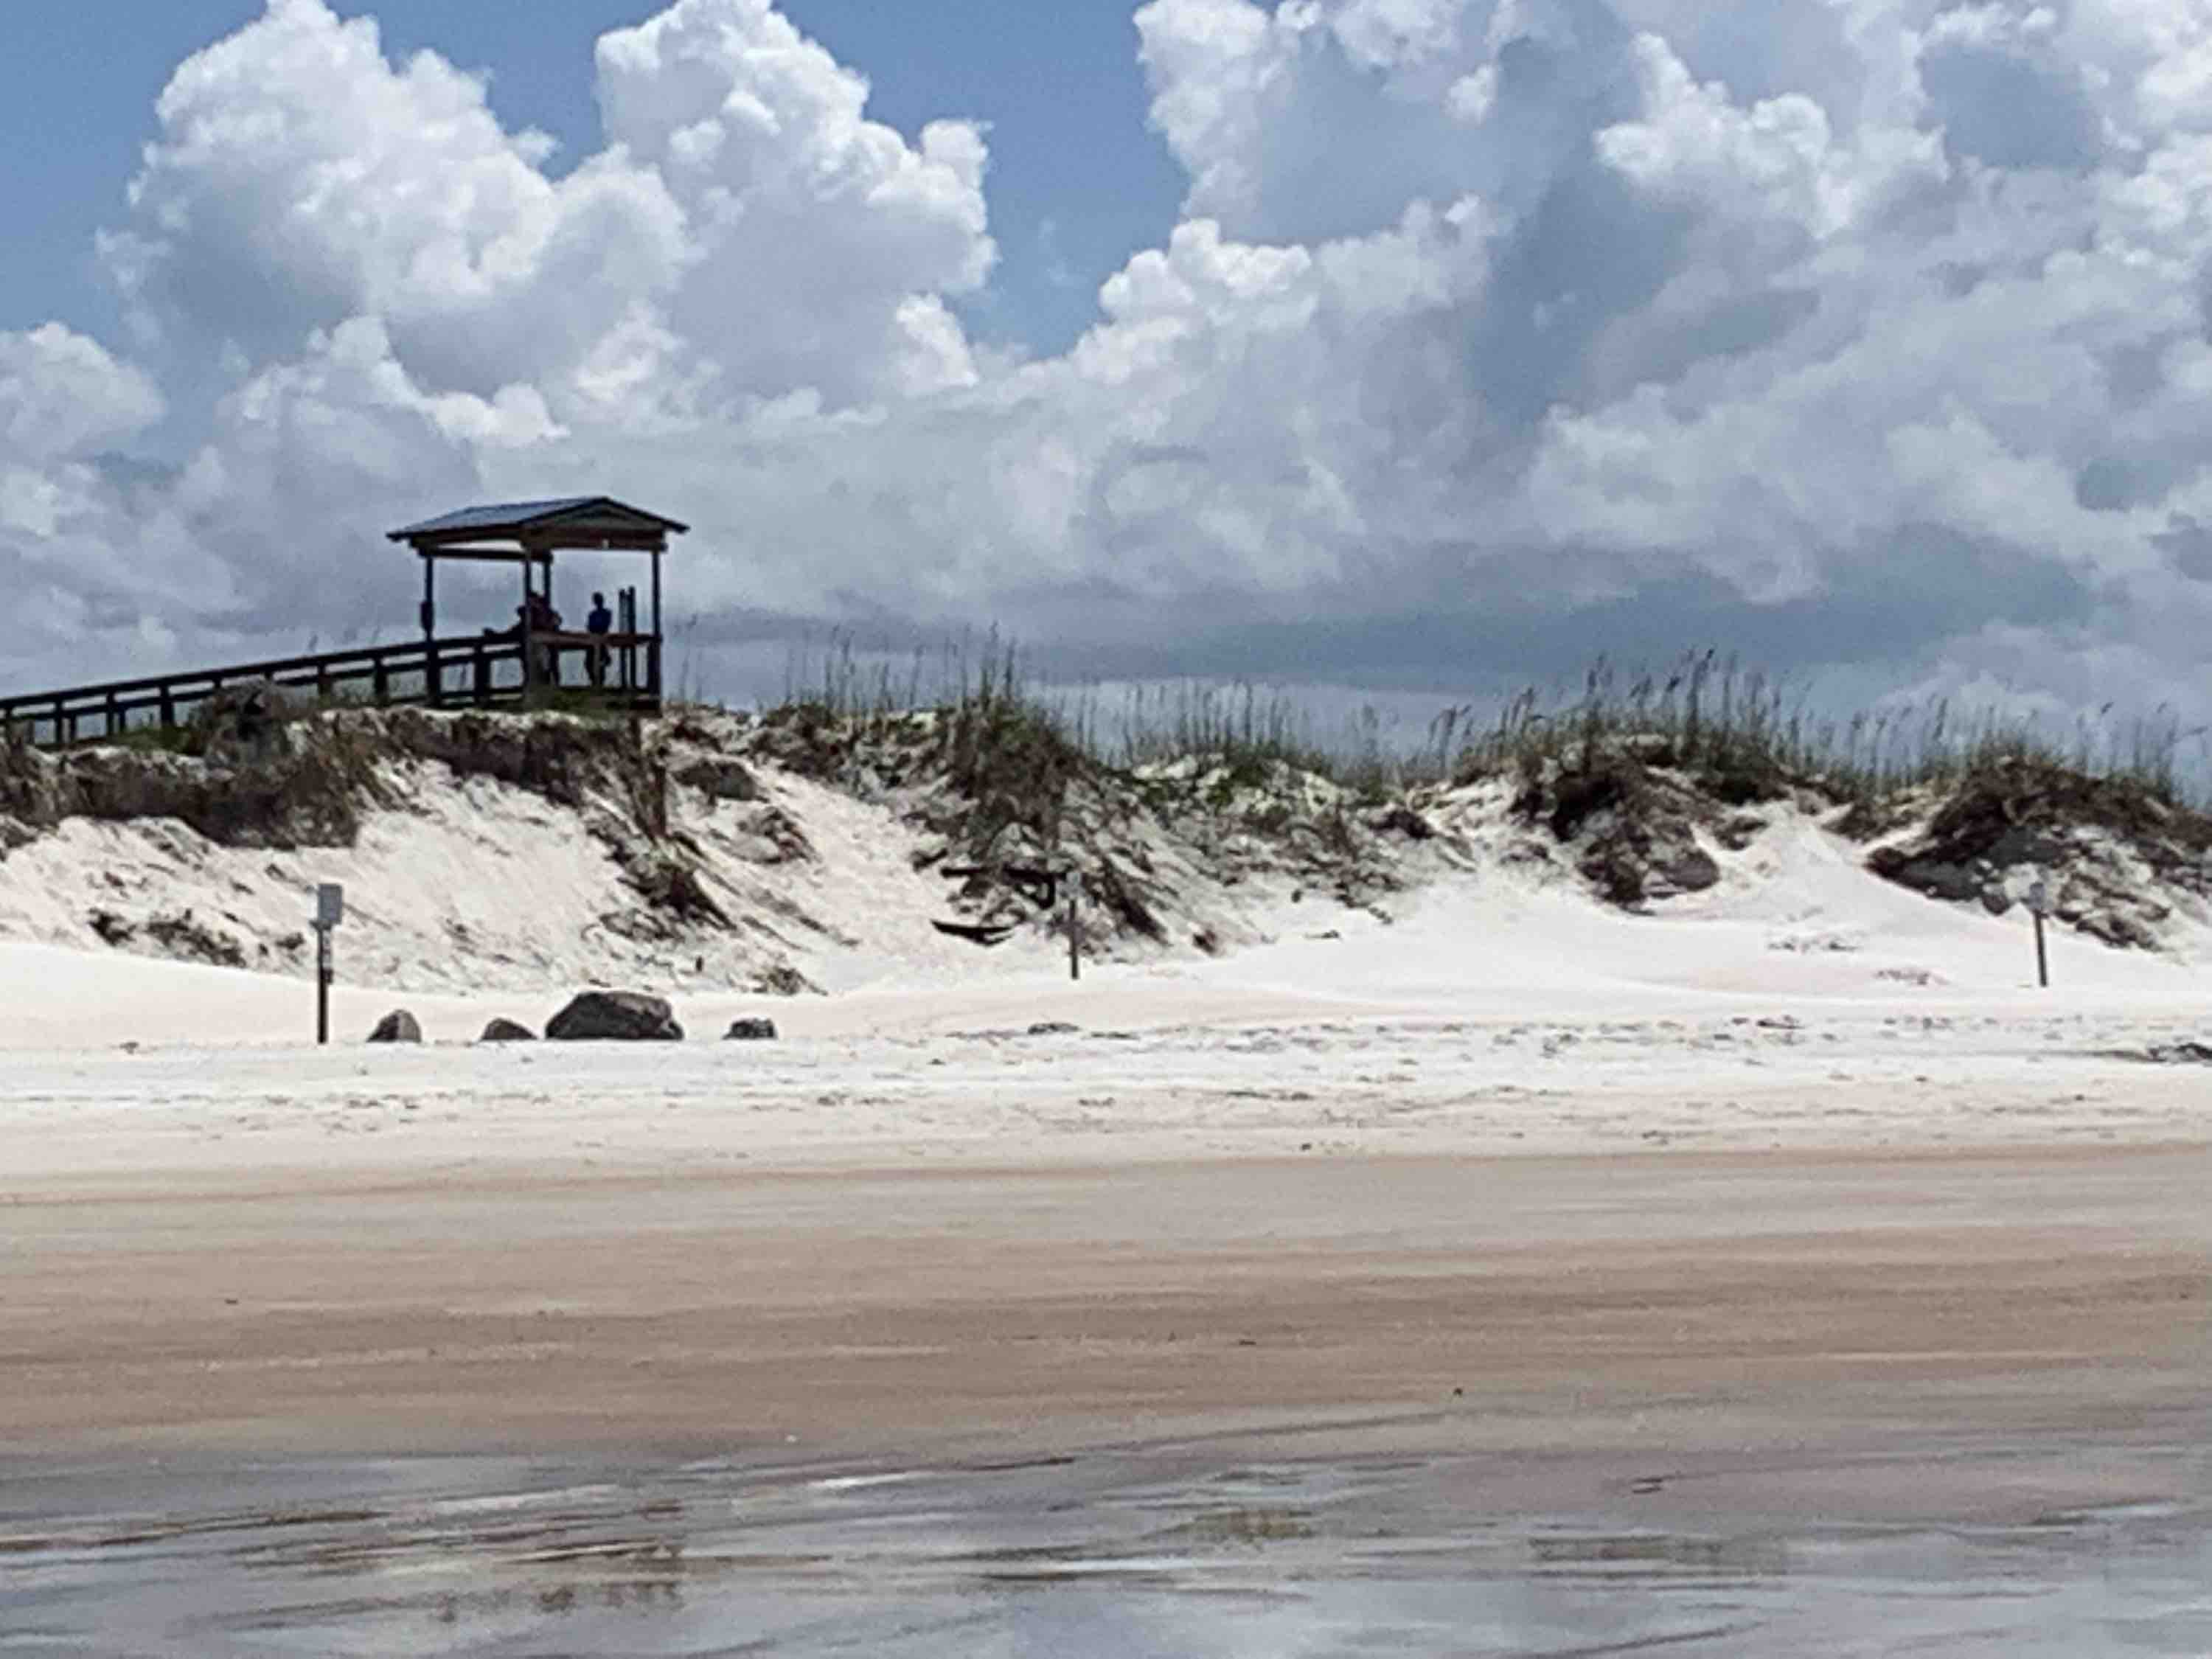 Smyrna Dunes Park from Ponce Inlet showing stairway removed